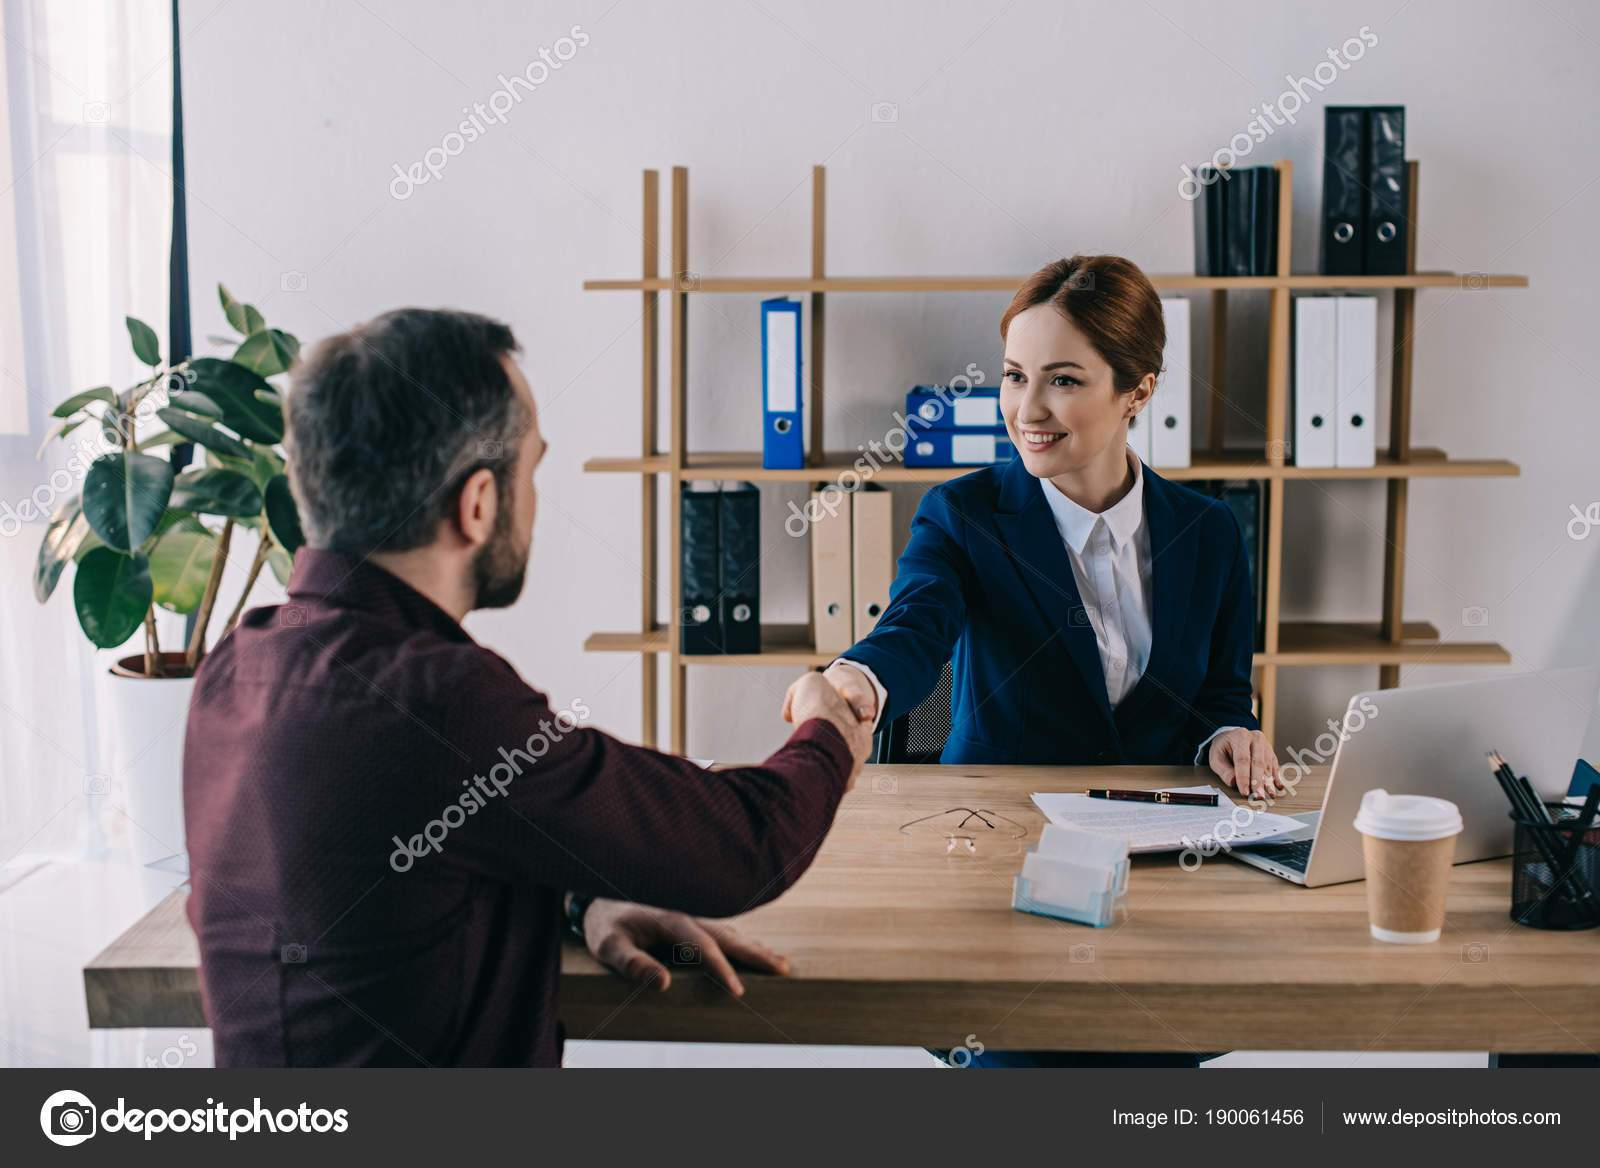 depositphotos_190061456-stock-photo-smiling-businesswoman-client-shaking-hands